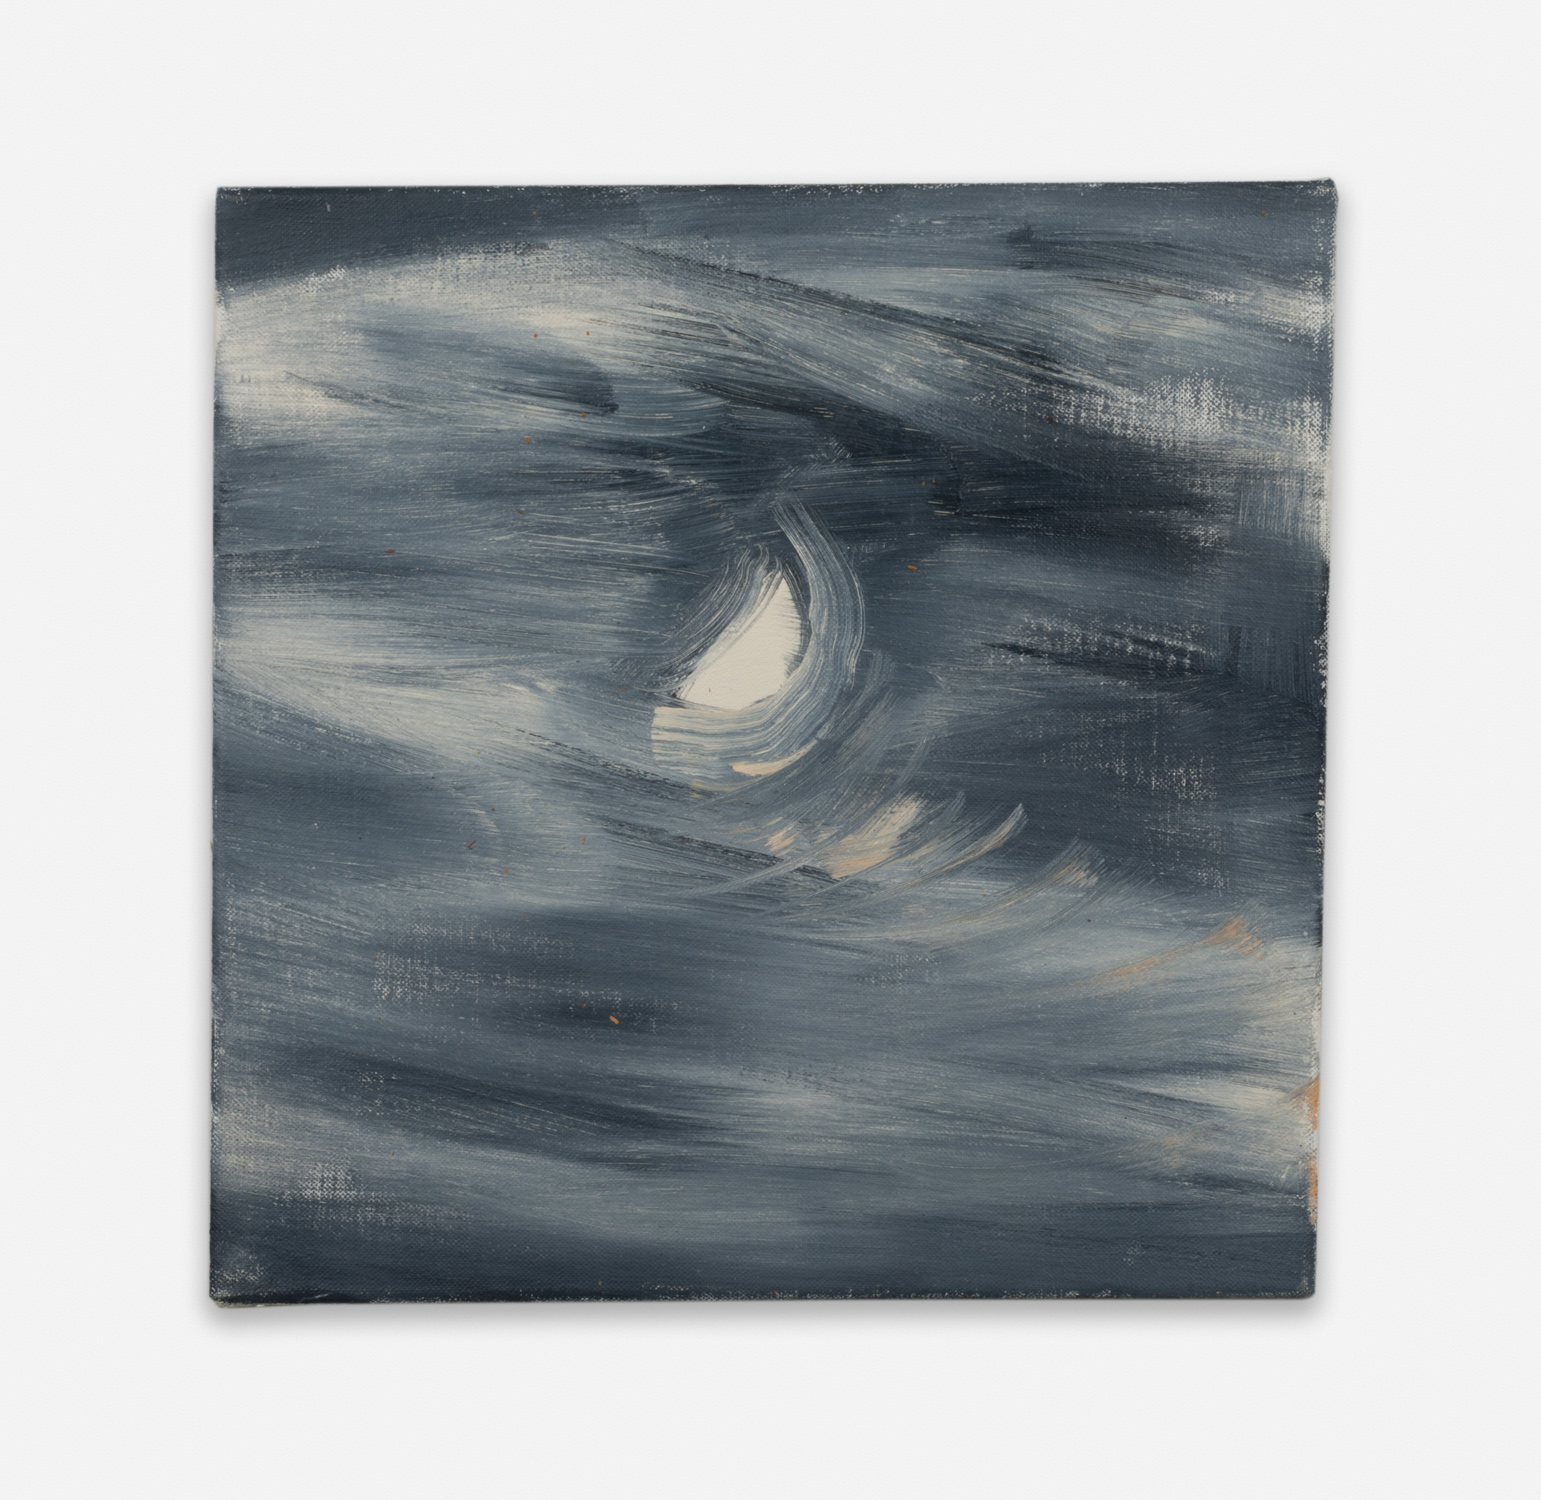 Ann Craven  Moon (Guilford, 8-25-12, 10:18PM), 2012  2012 Oil on linen 14h x 14w in AC127